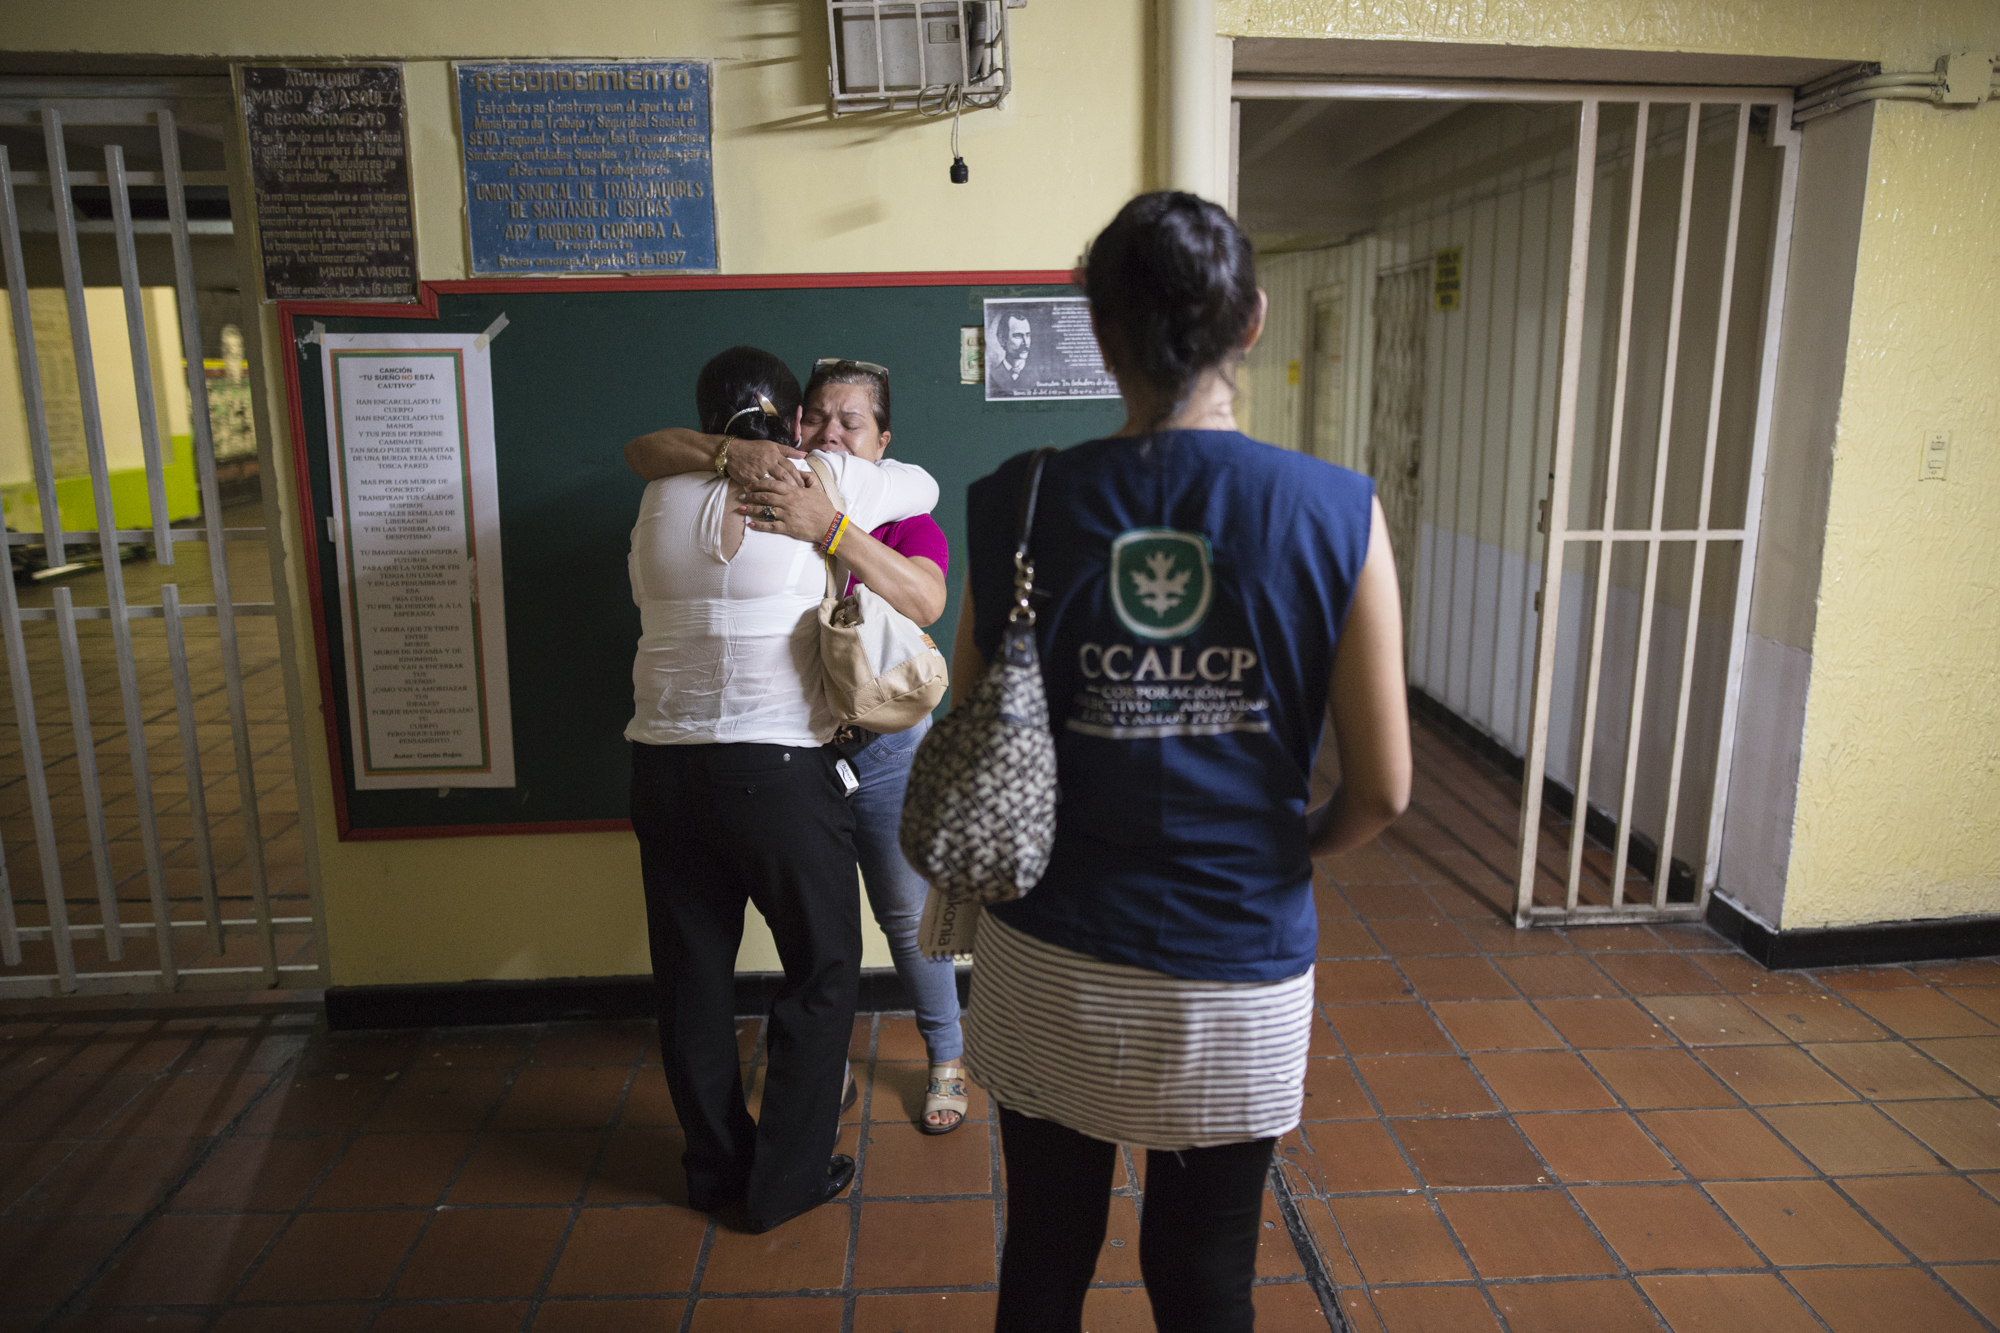 Julia Figueroa, human rights lawyer and leader of the CCALP, all women's legal collective, speaks with Imelda Oliva Martinez Reyes whose two children were disappeared, after a meeting at the Central Unitaria de Trabajadores in Bucaramanga, Colombia on May 8, 2017.